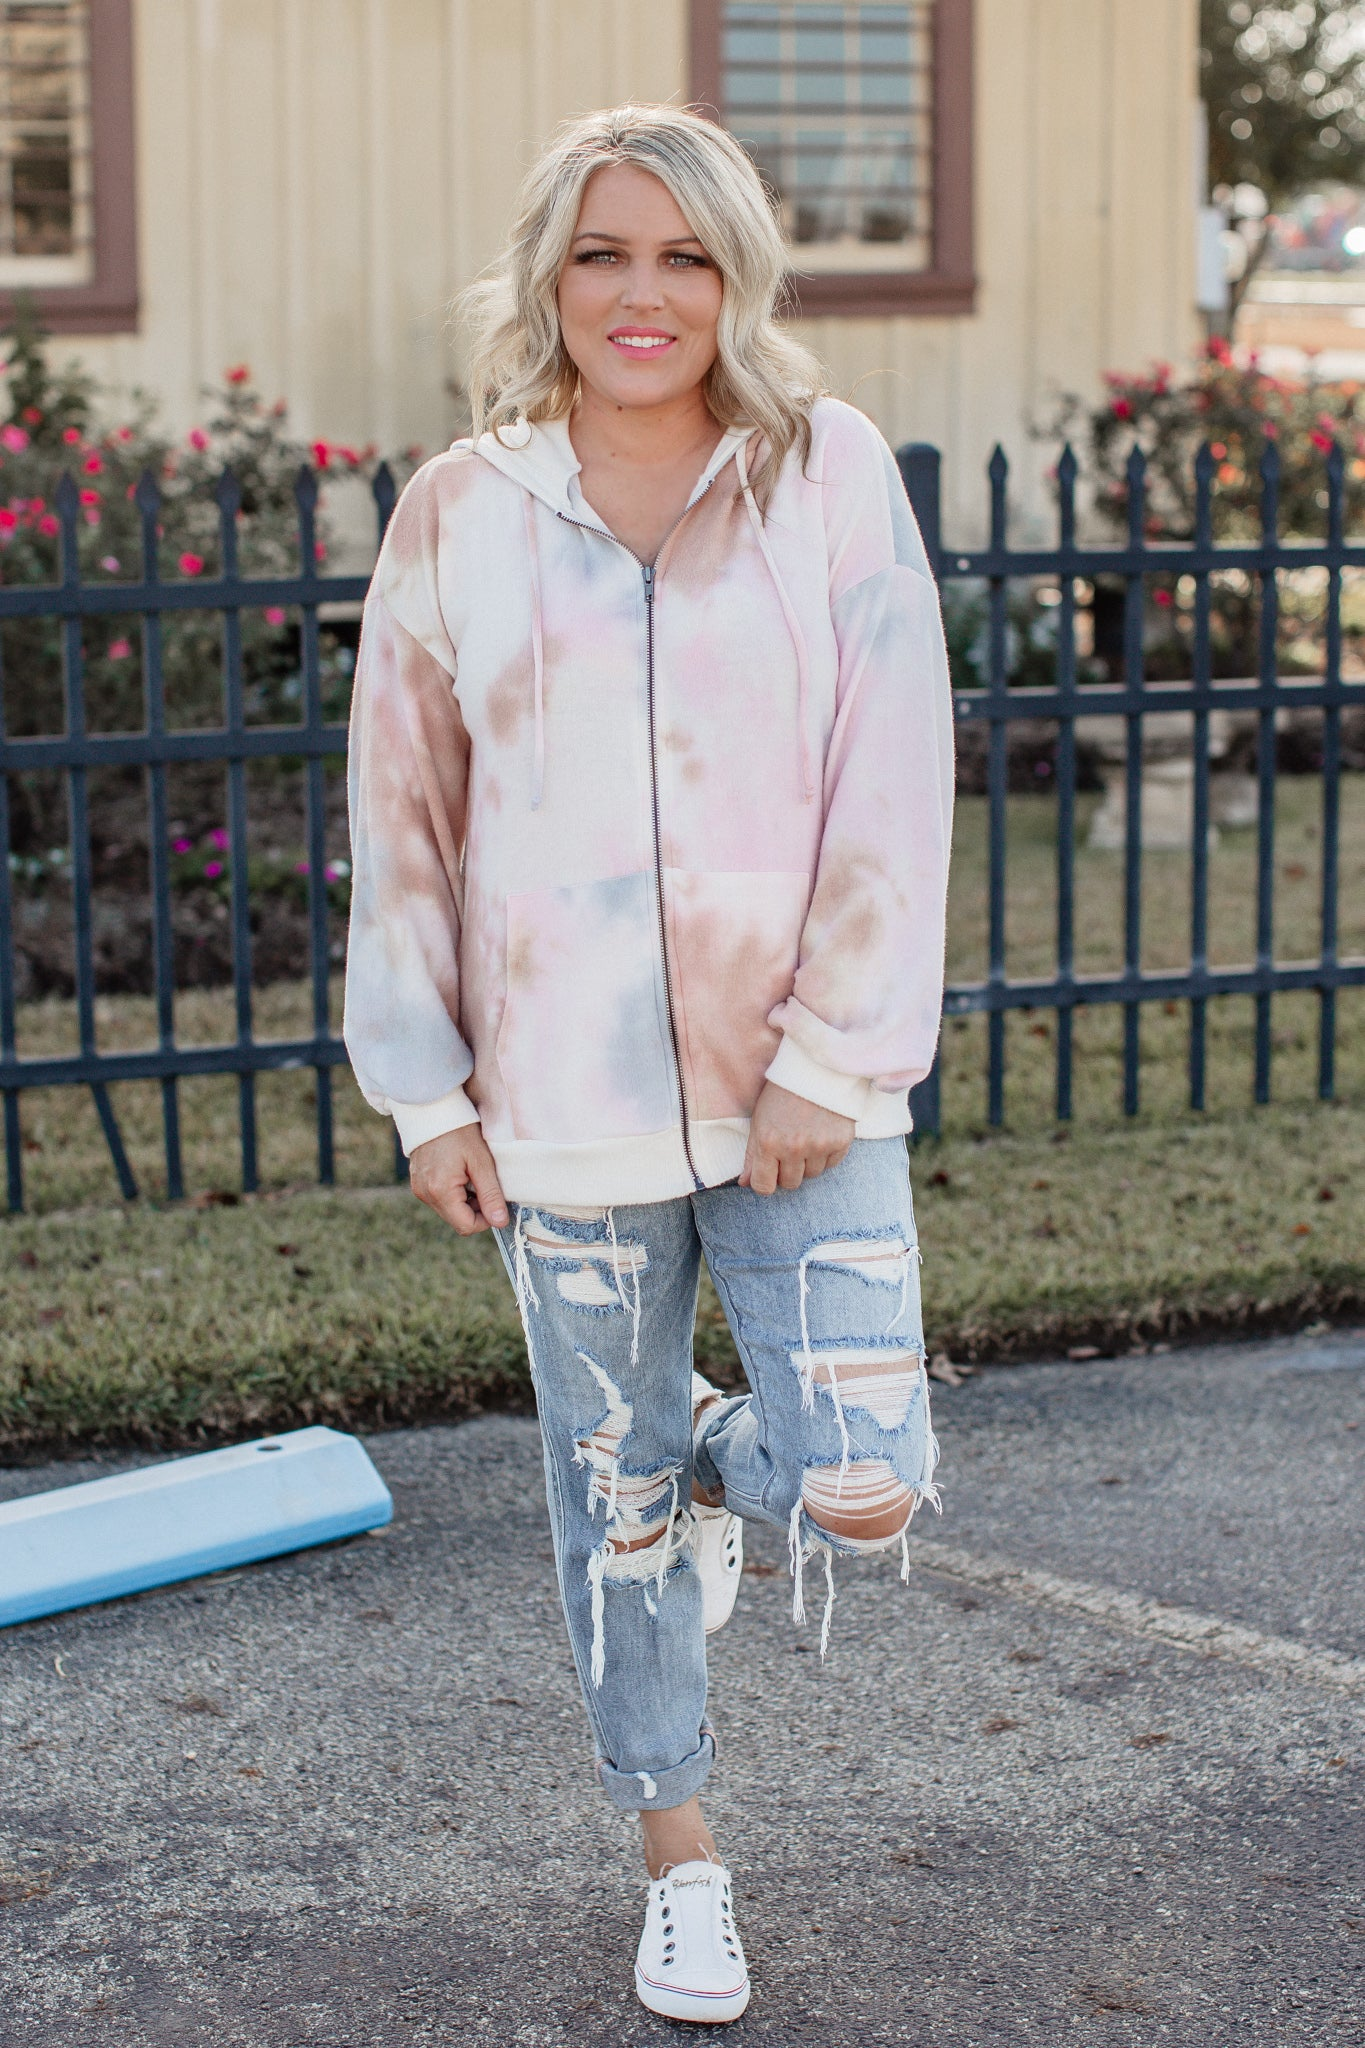 Zip Up Tie Dye Brushed Jacket (CAN SIZE DOWN)